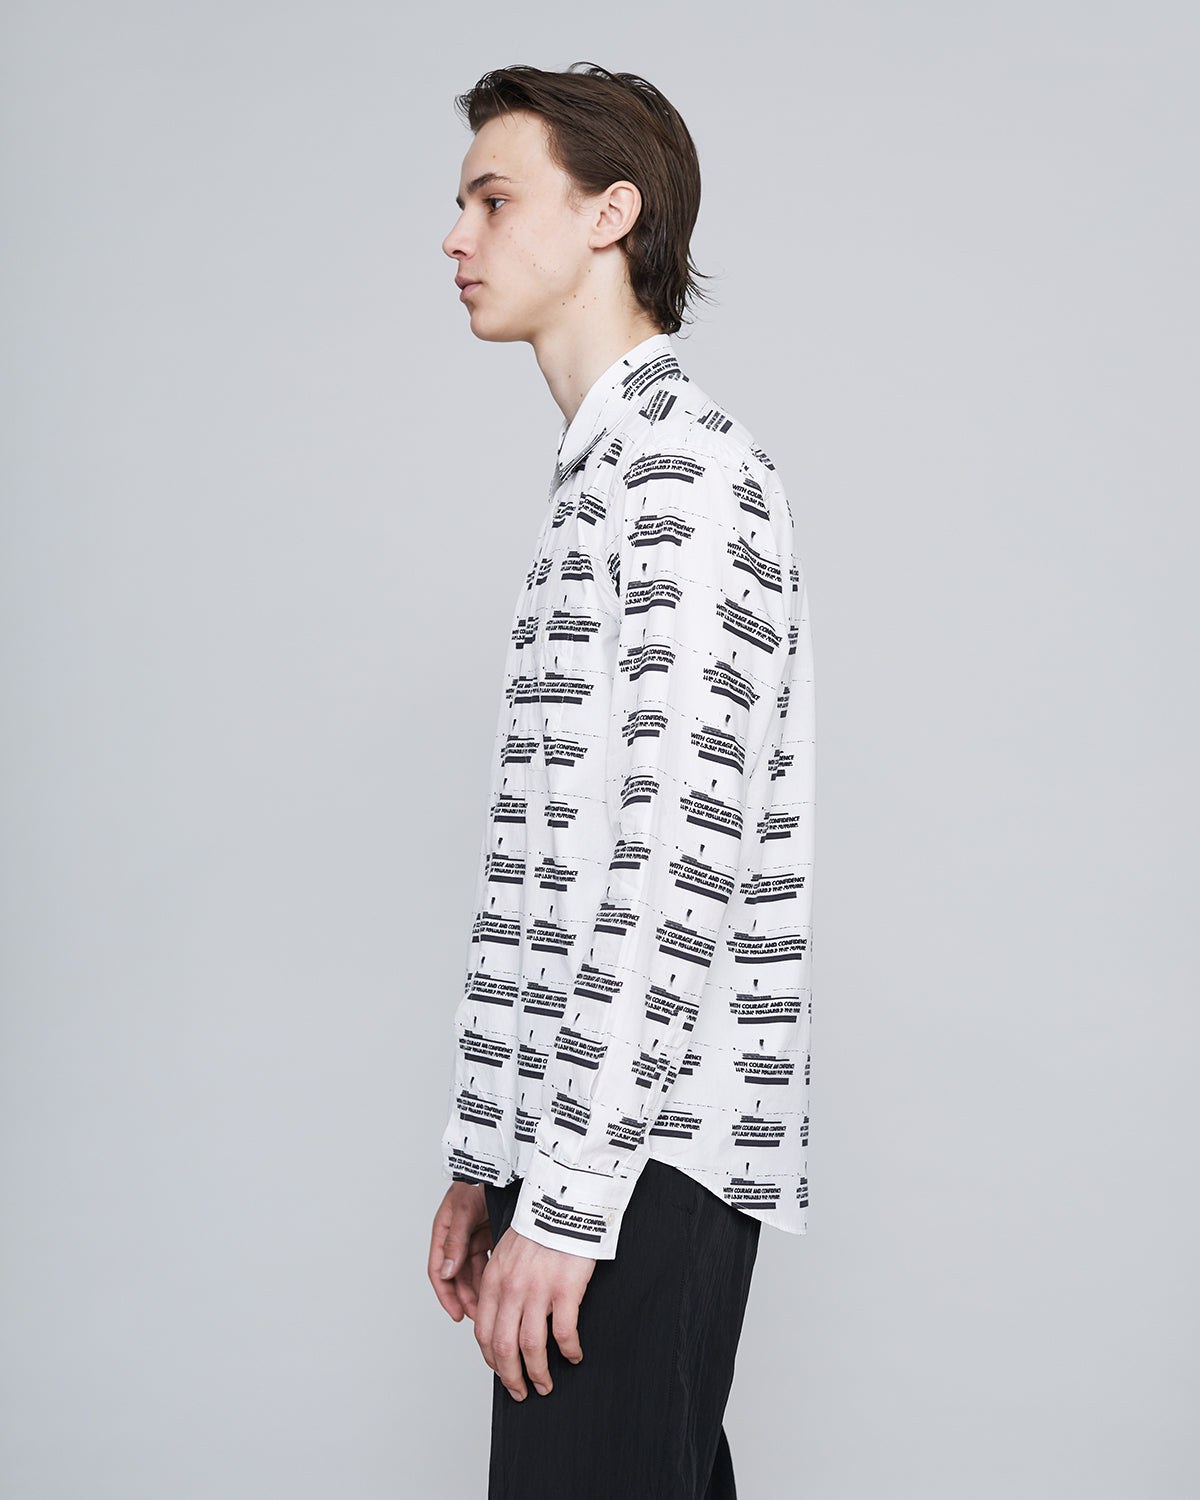 ØLÅF X Matter Shirt All Over Print<br>White/Black